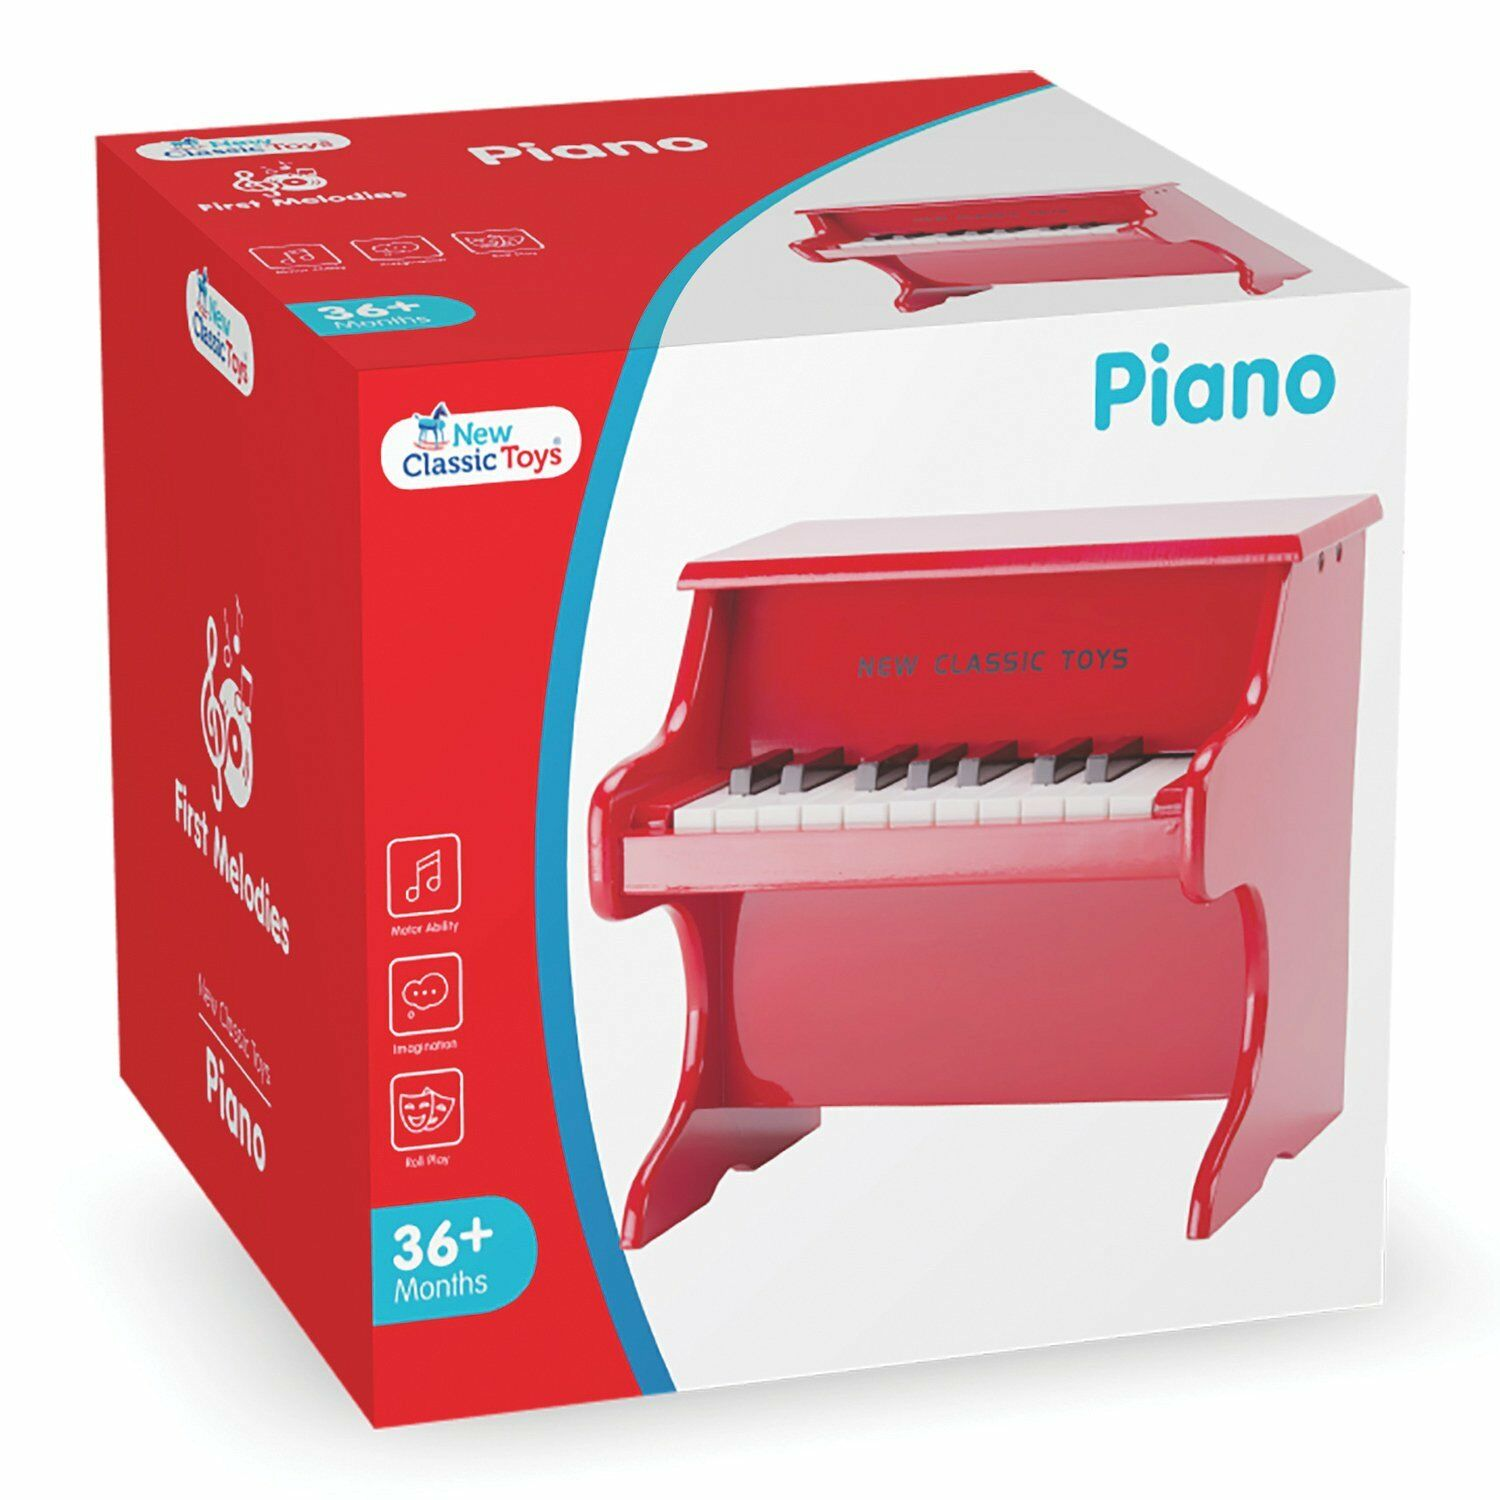 New Classic Toys - 10155 - Musical Musical Musical Toy Instruments - Toy Piano - rot - 18 keys d03d87